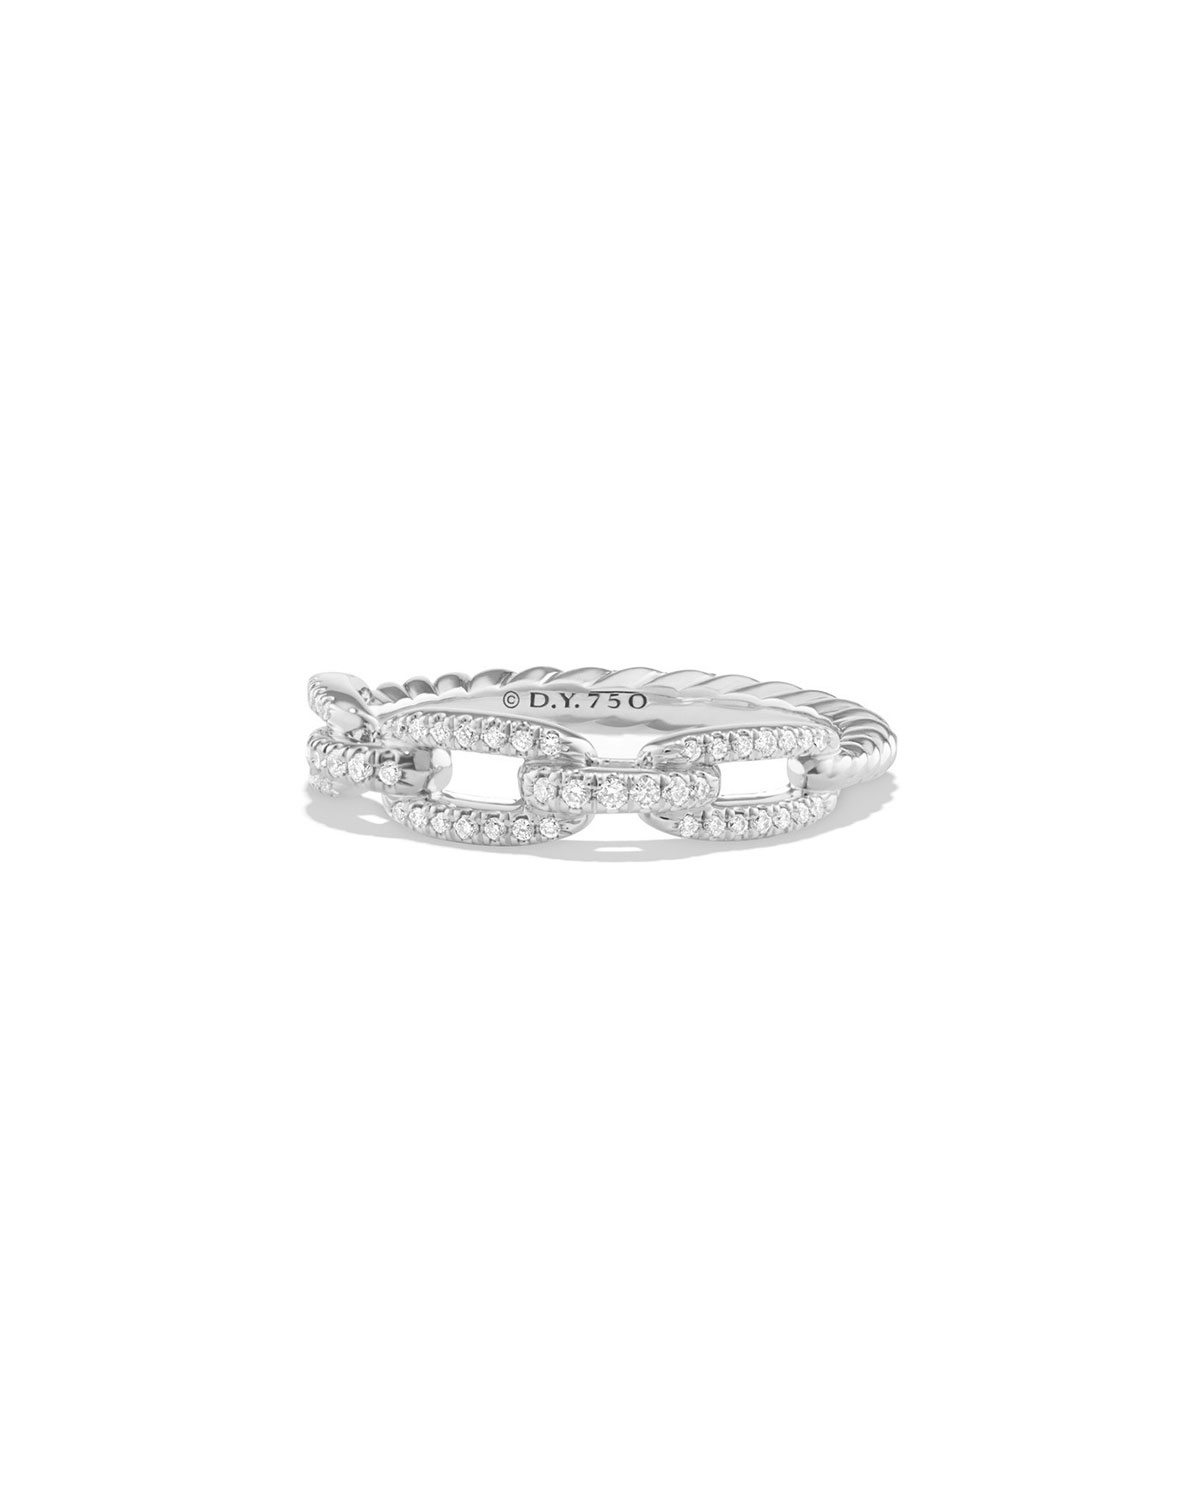 David Yurman Stax Pave Diamond Chain Link Ring in 18K White Gold, Size 6